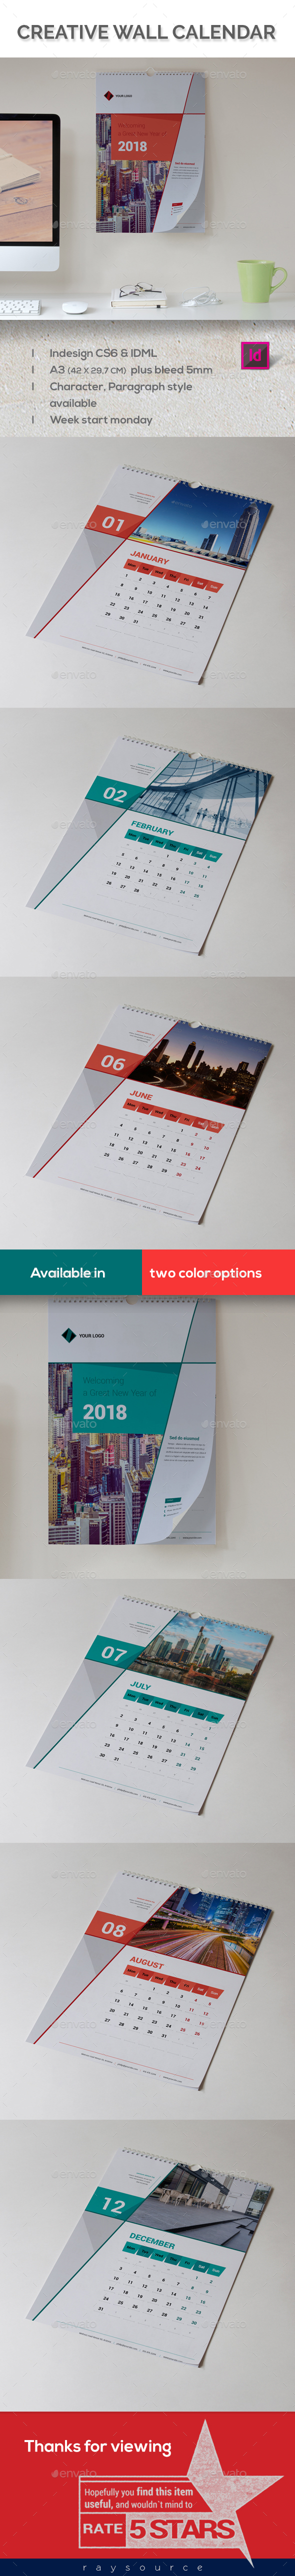 Corporate Wall Calender 2018 - Calendars Stationery